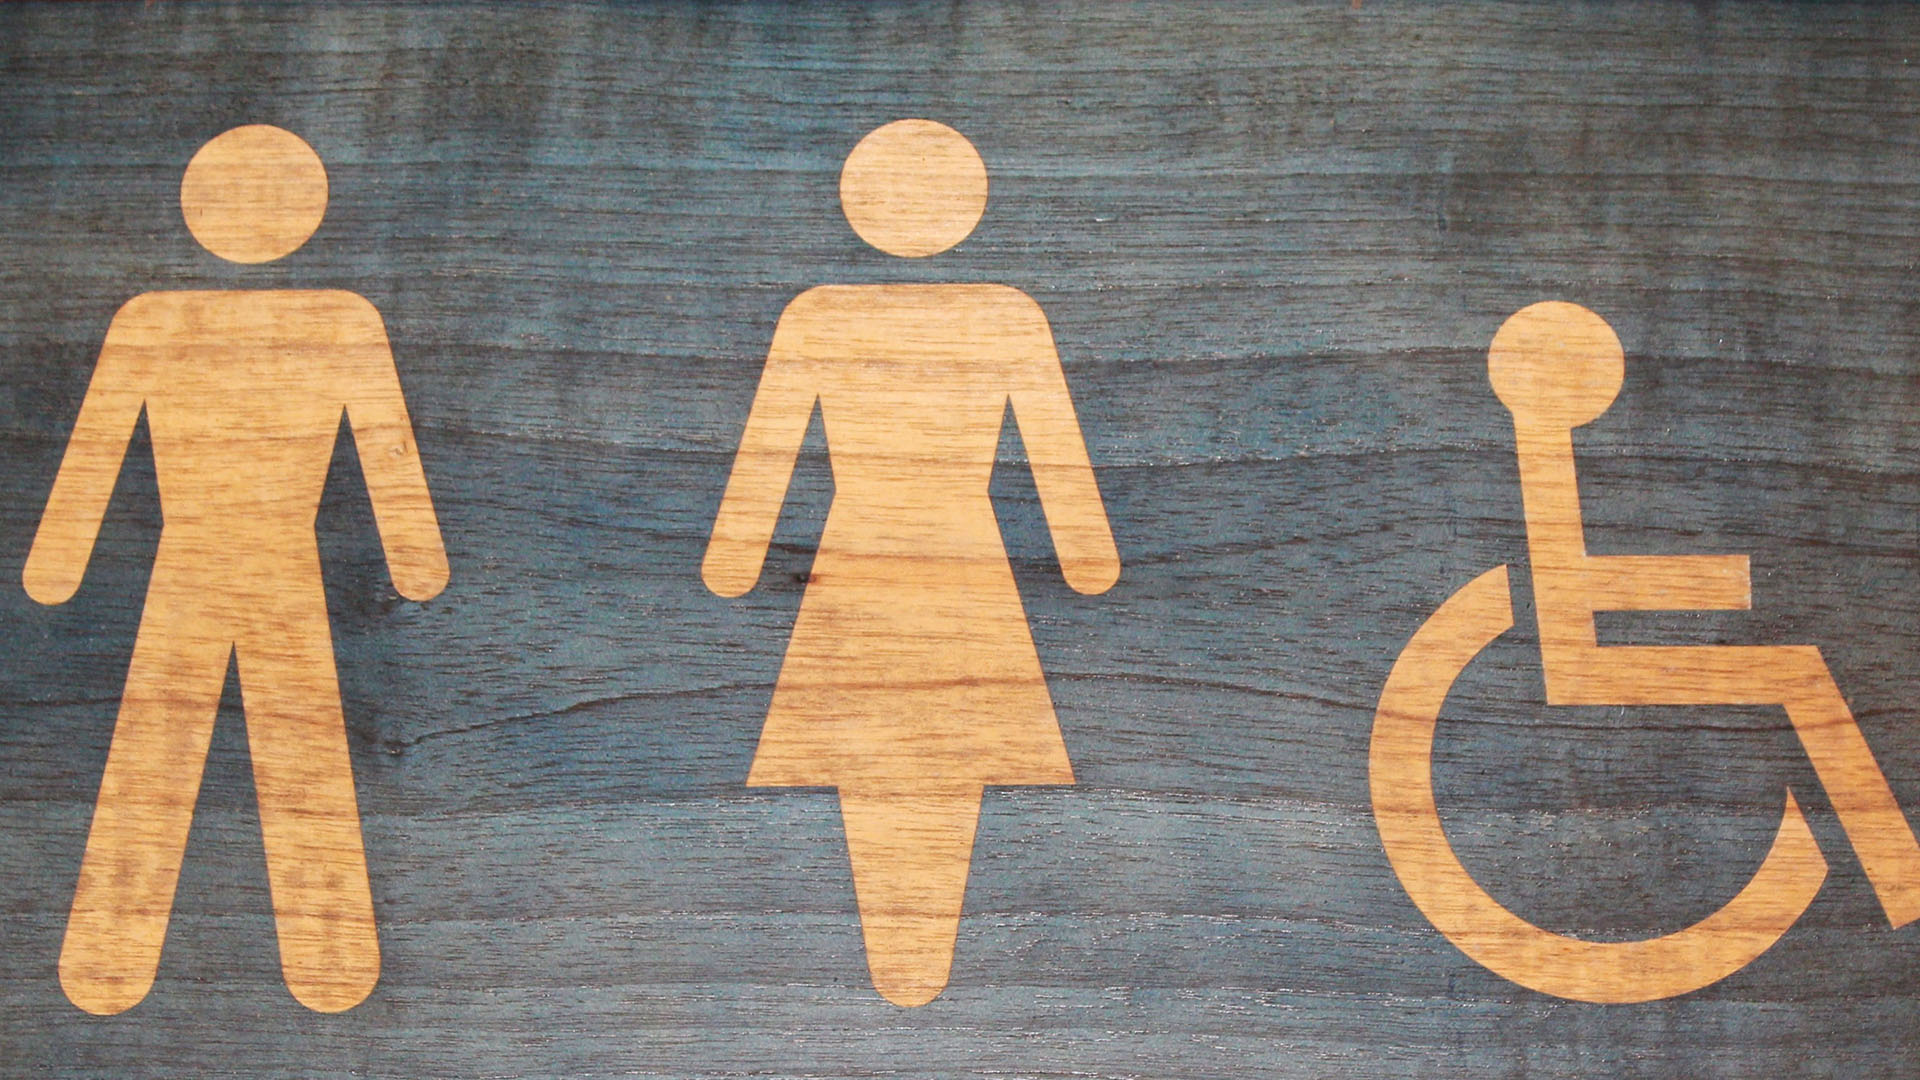 The election could determine the Supreme Court's transgender bathroom case